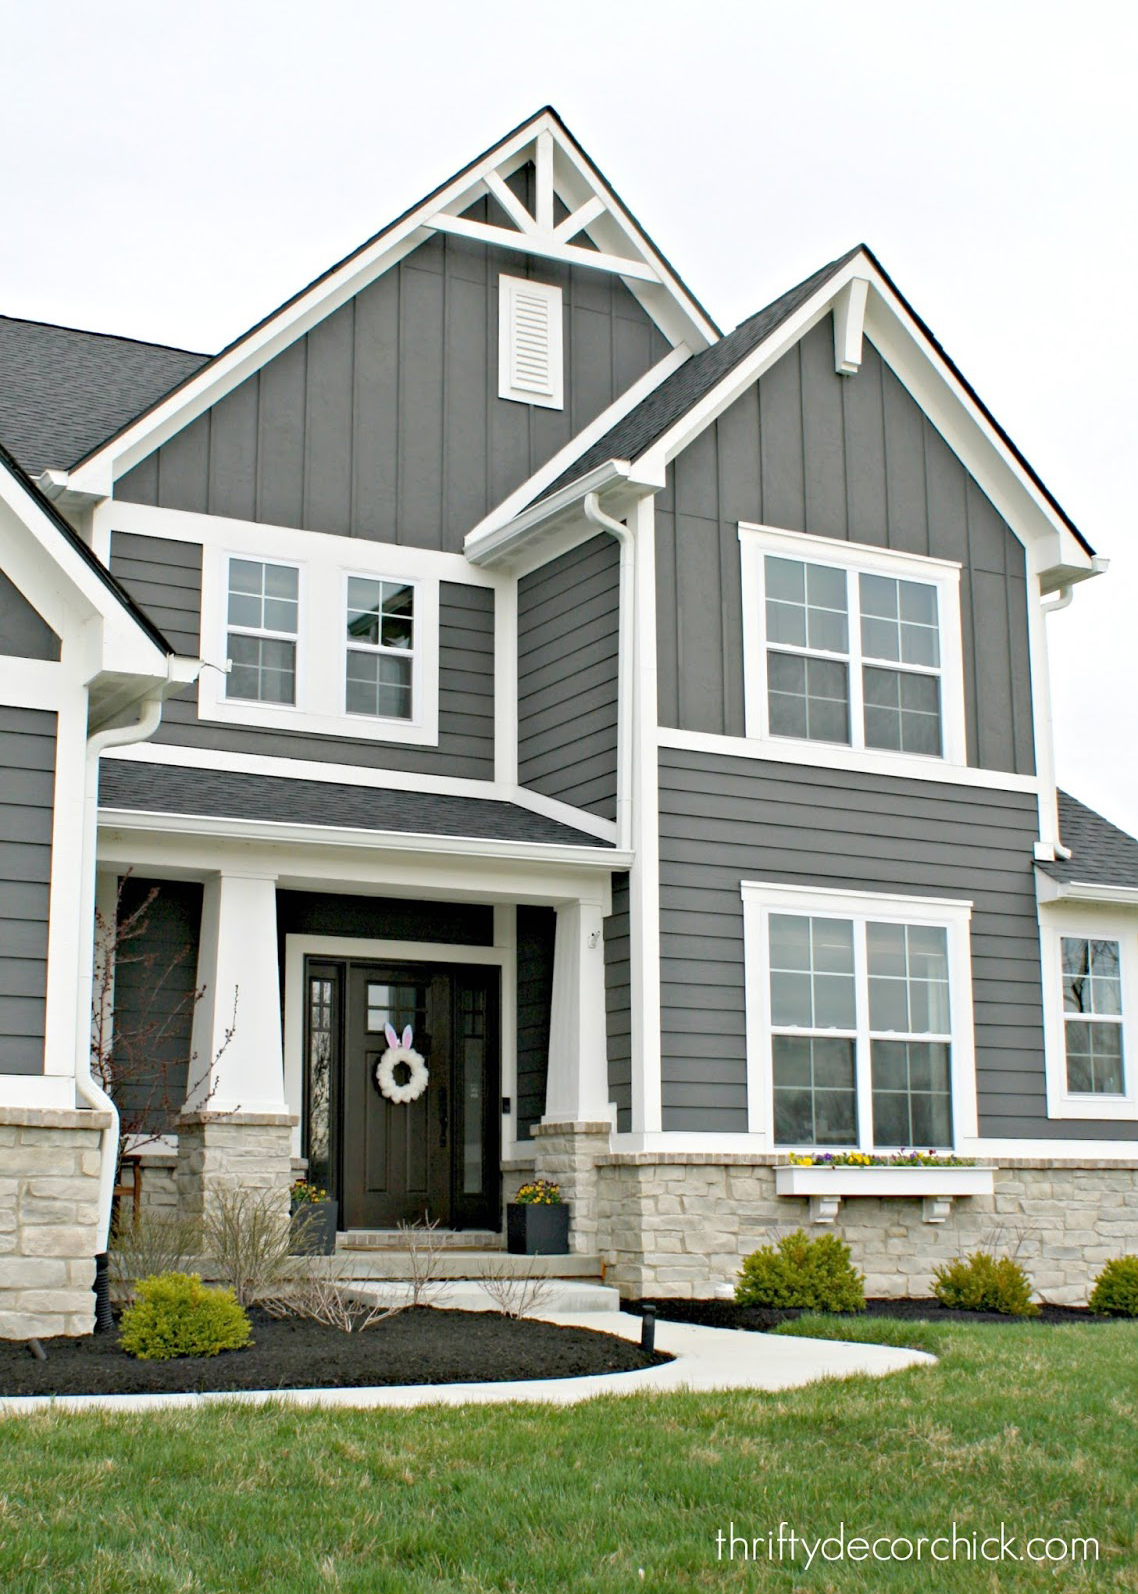 Beautiful Dark Gray Exterior Paint Colors in Action - Image via Thrifty Decor Chick, feat. paint color: 'Knight's Armor' by PPG